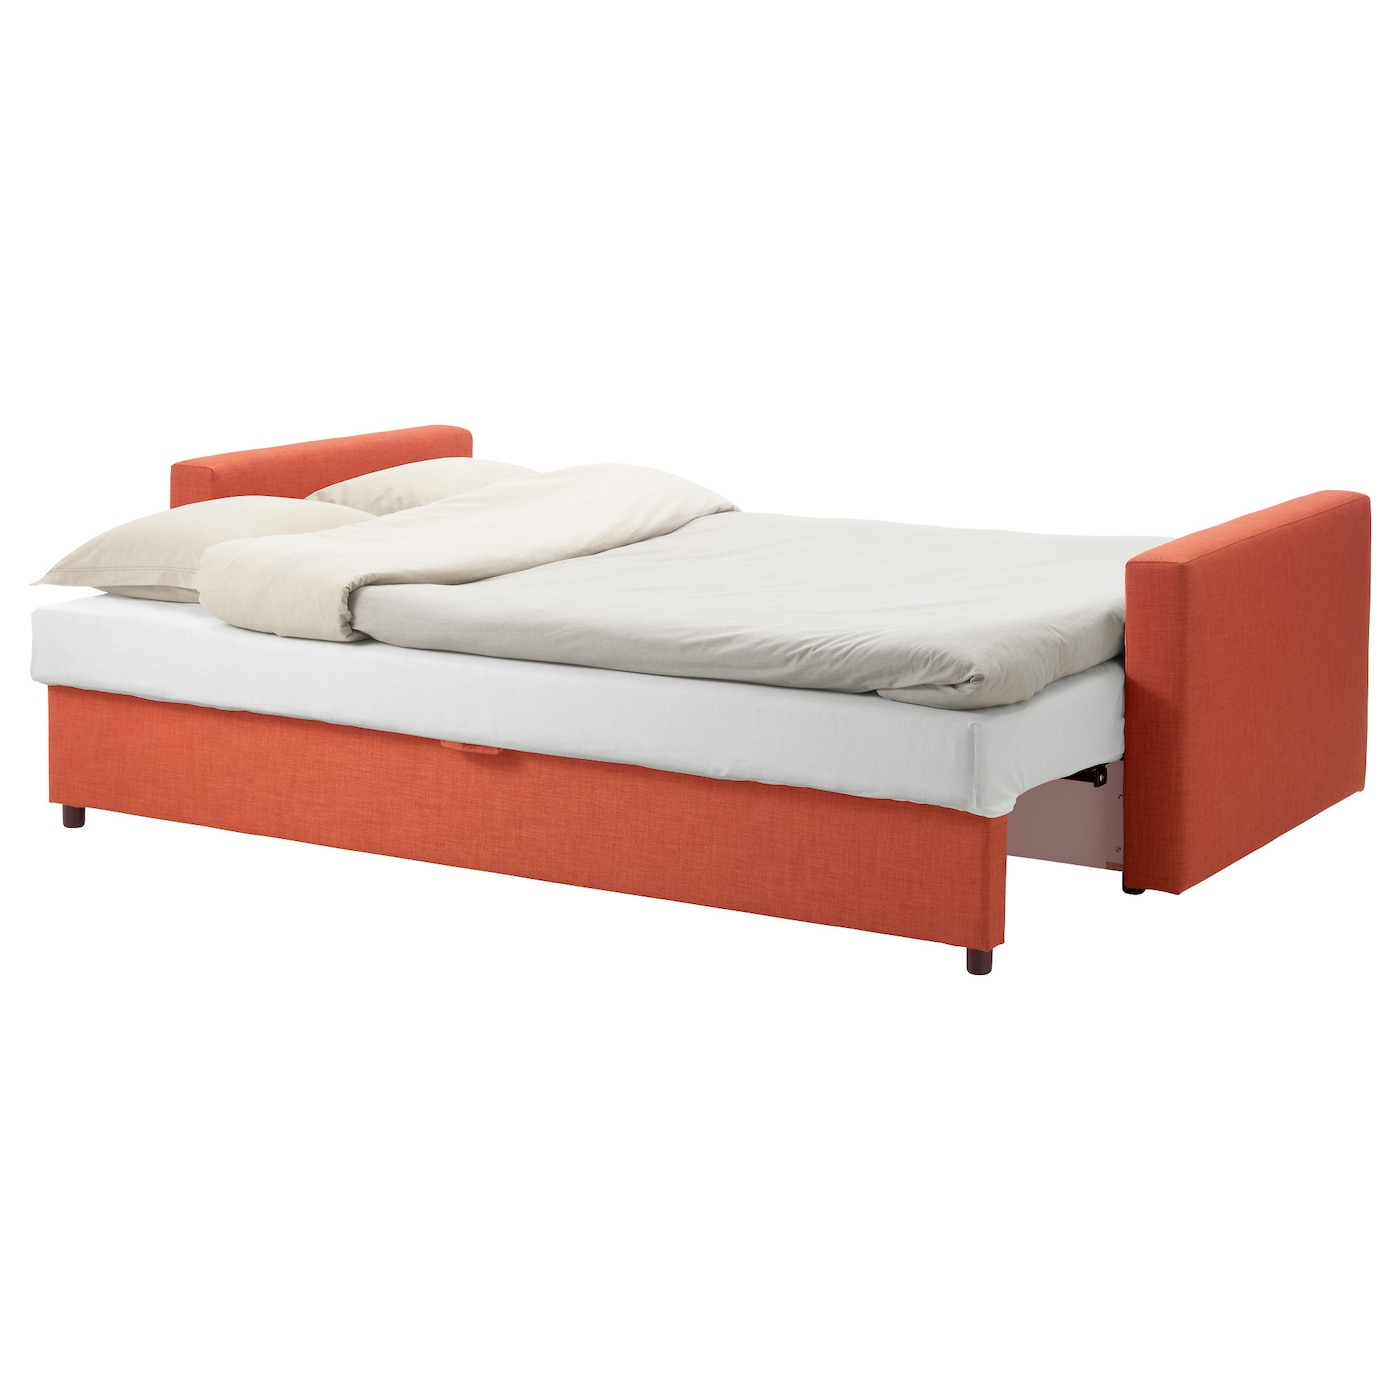 orange and black sofa bed abbyson living bedford gray linen convertible sleeper sectional friheten three seat skiftebo dark ikea